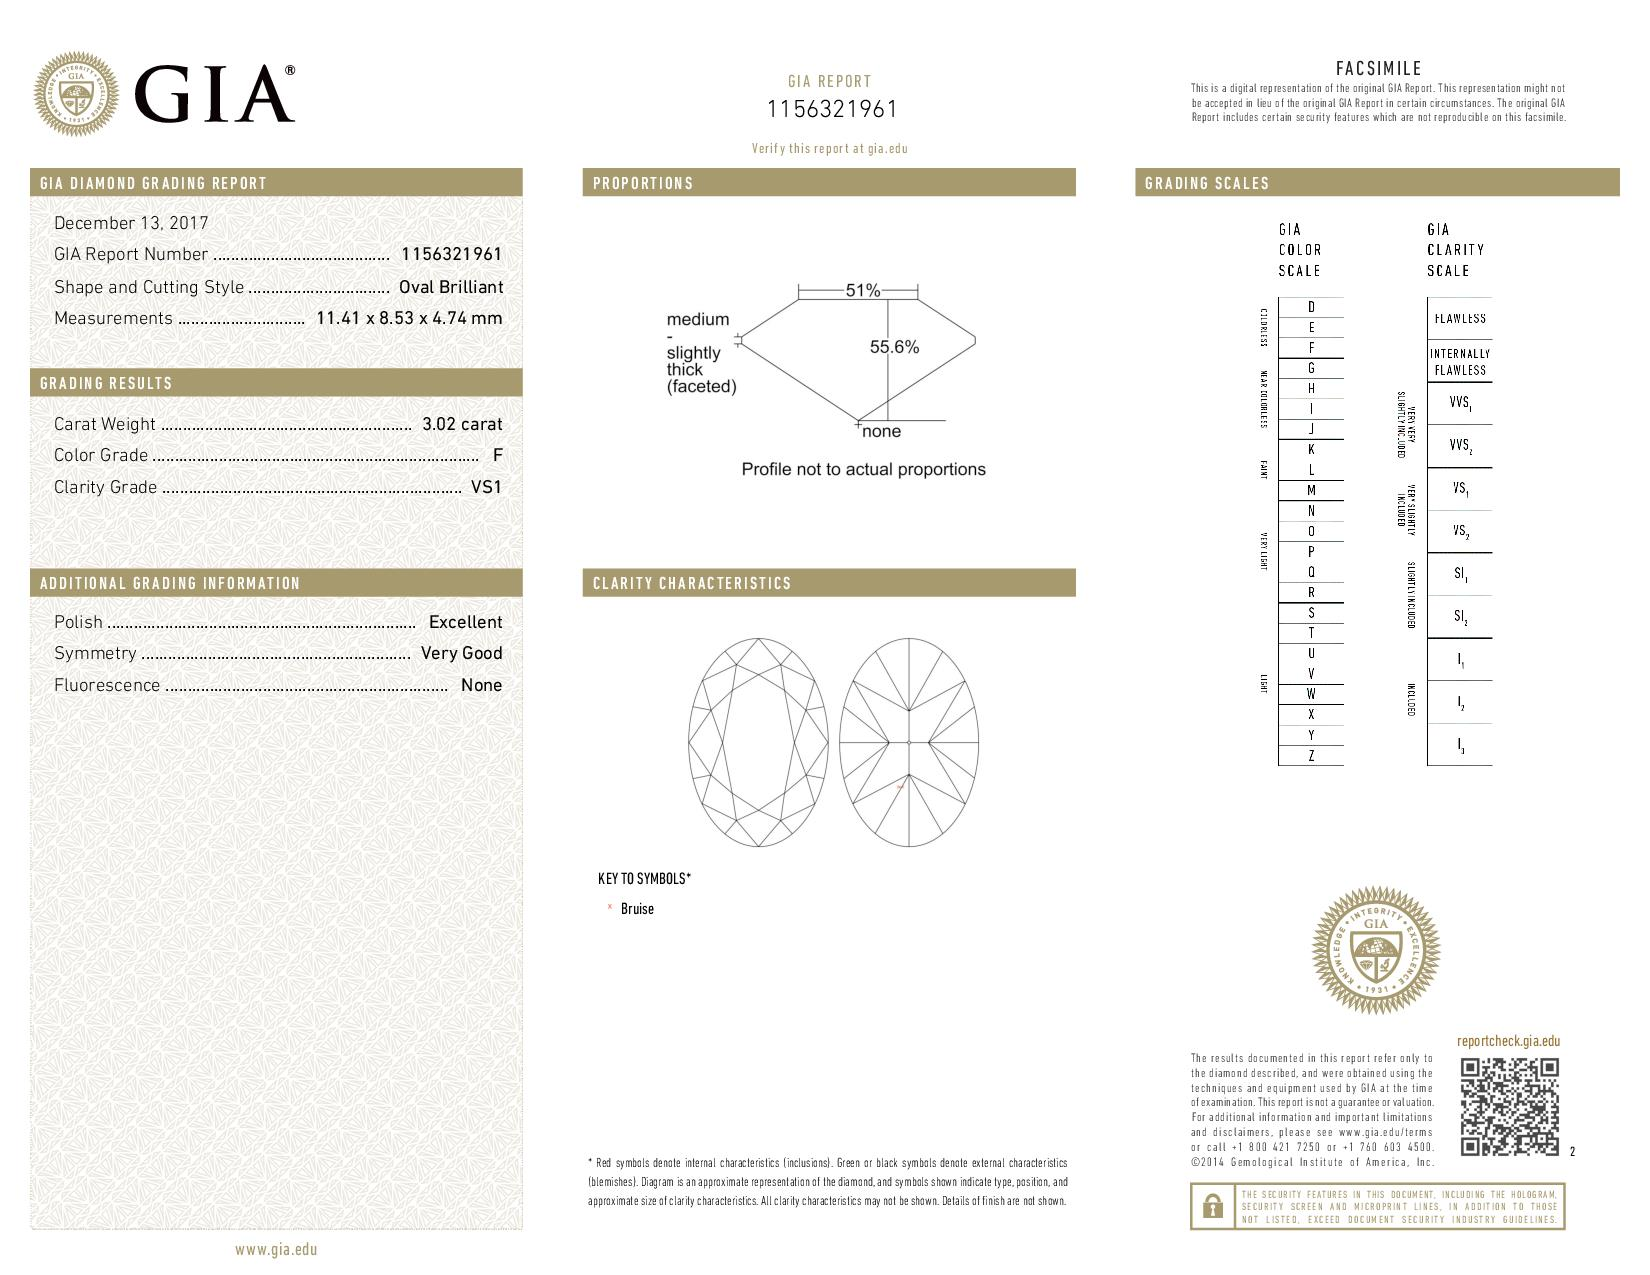 This is a 3.02 carat oval shape, F color, VS1 clarity natural diamond accompanied by a GIA grading report.